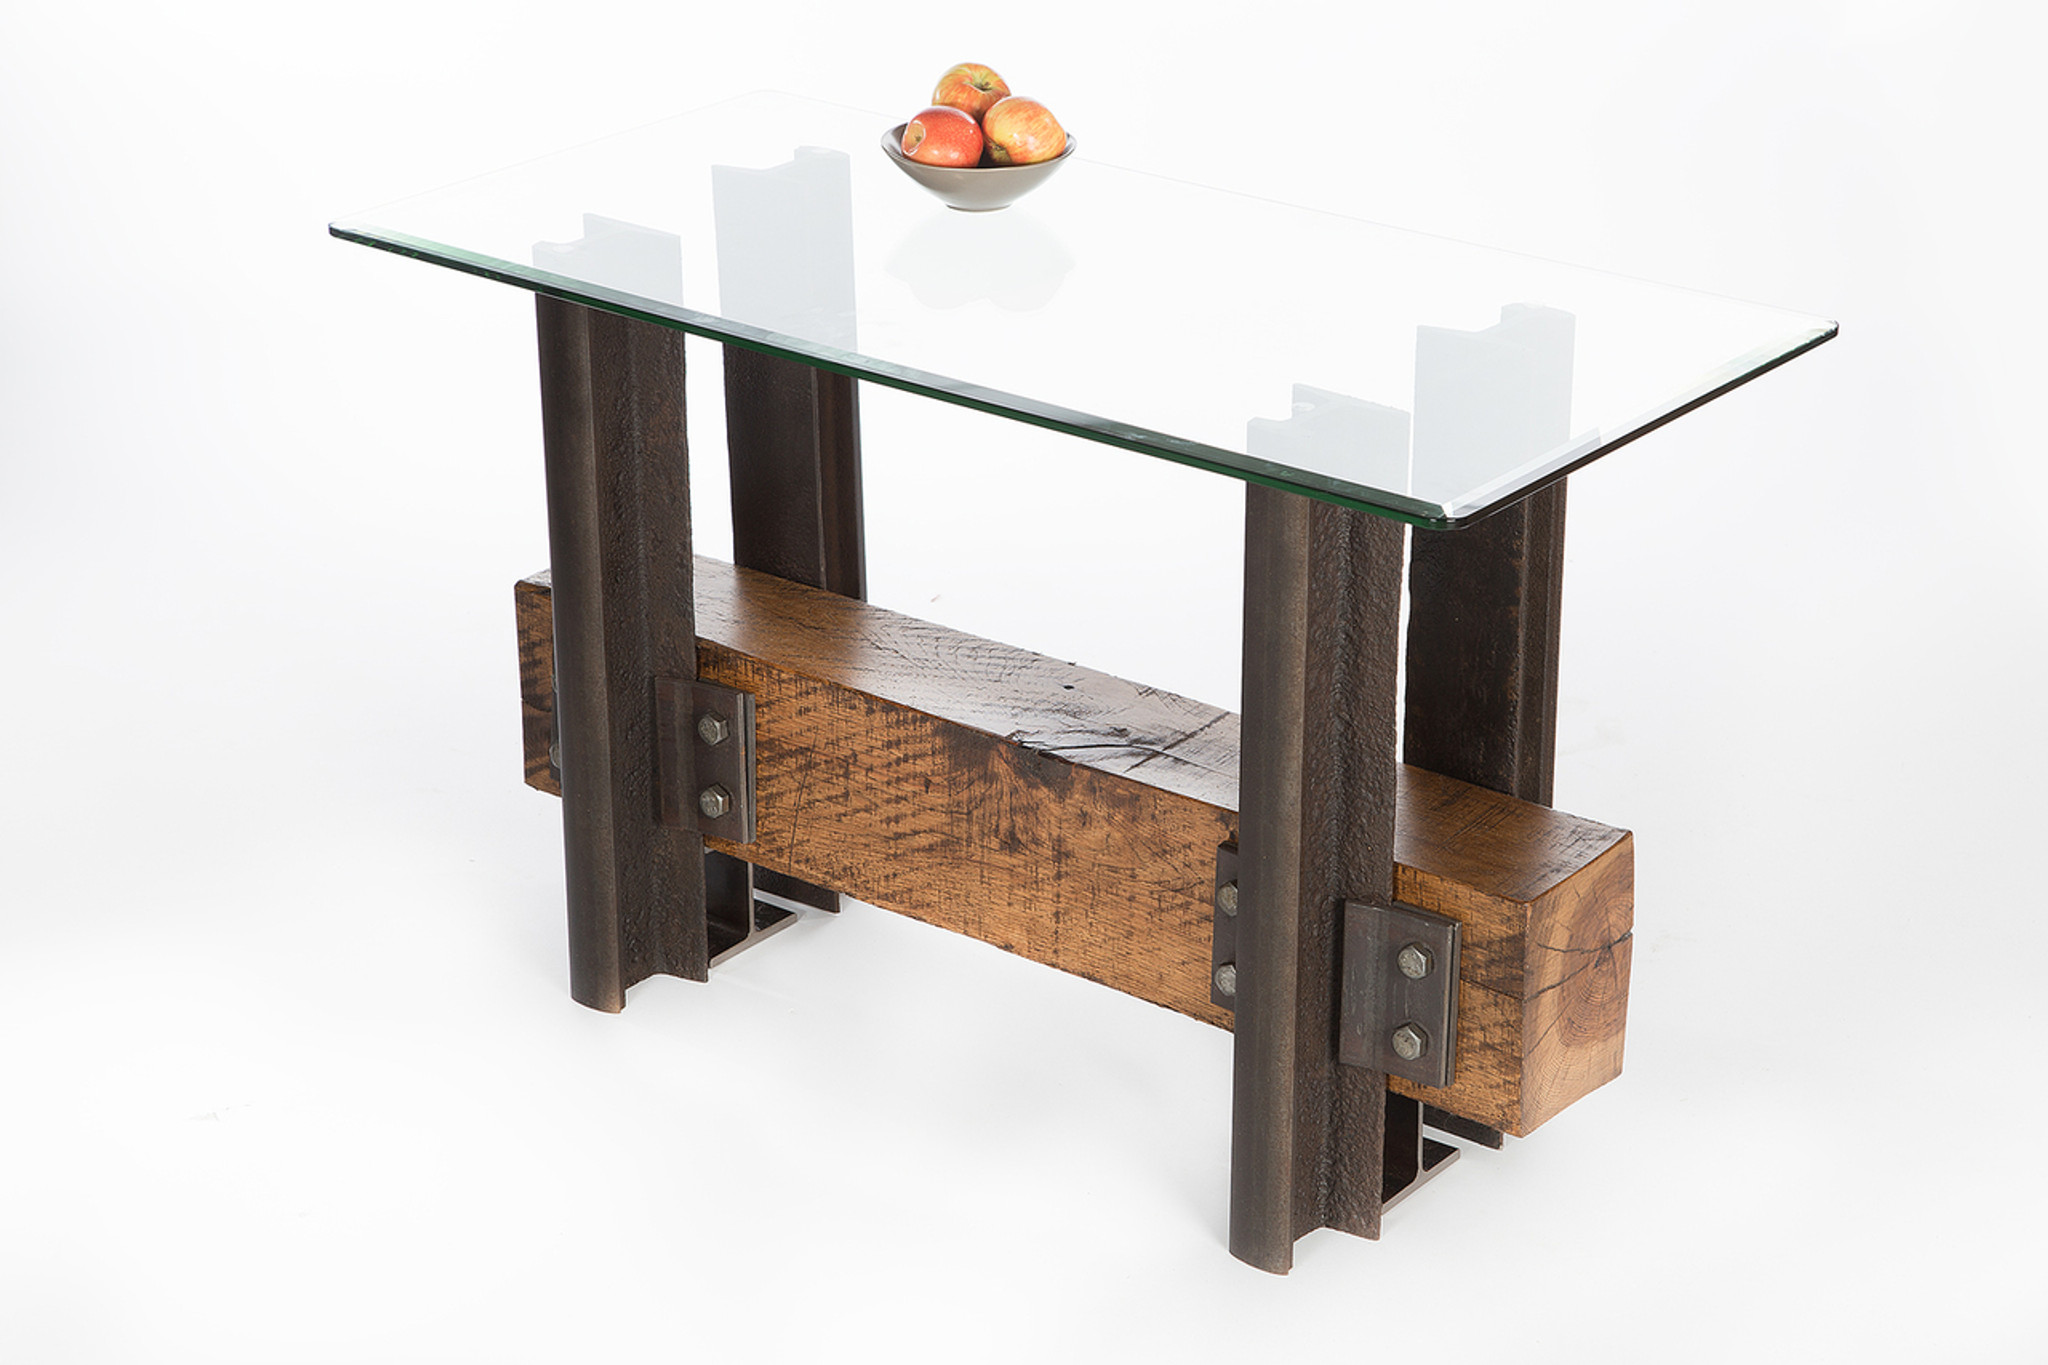 narrow entryway hall table with sustainably sourced wood base and steel legs